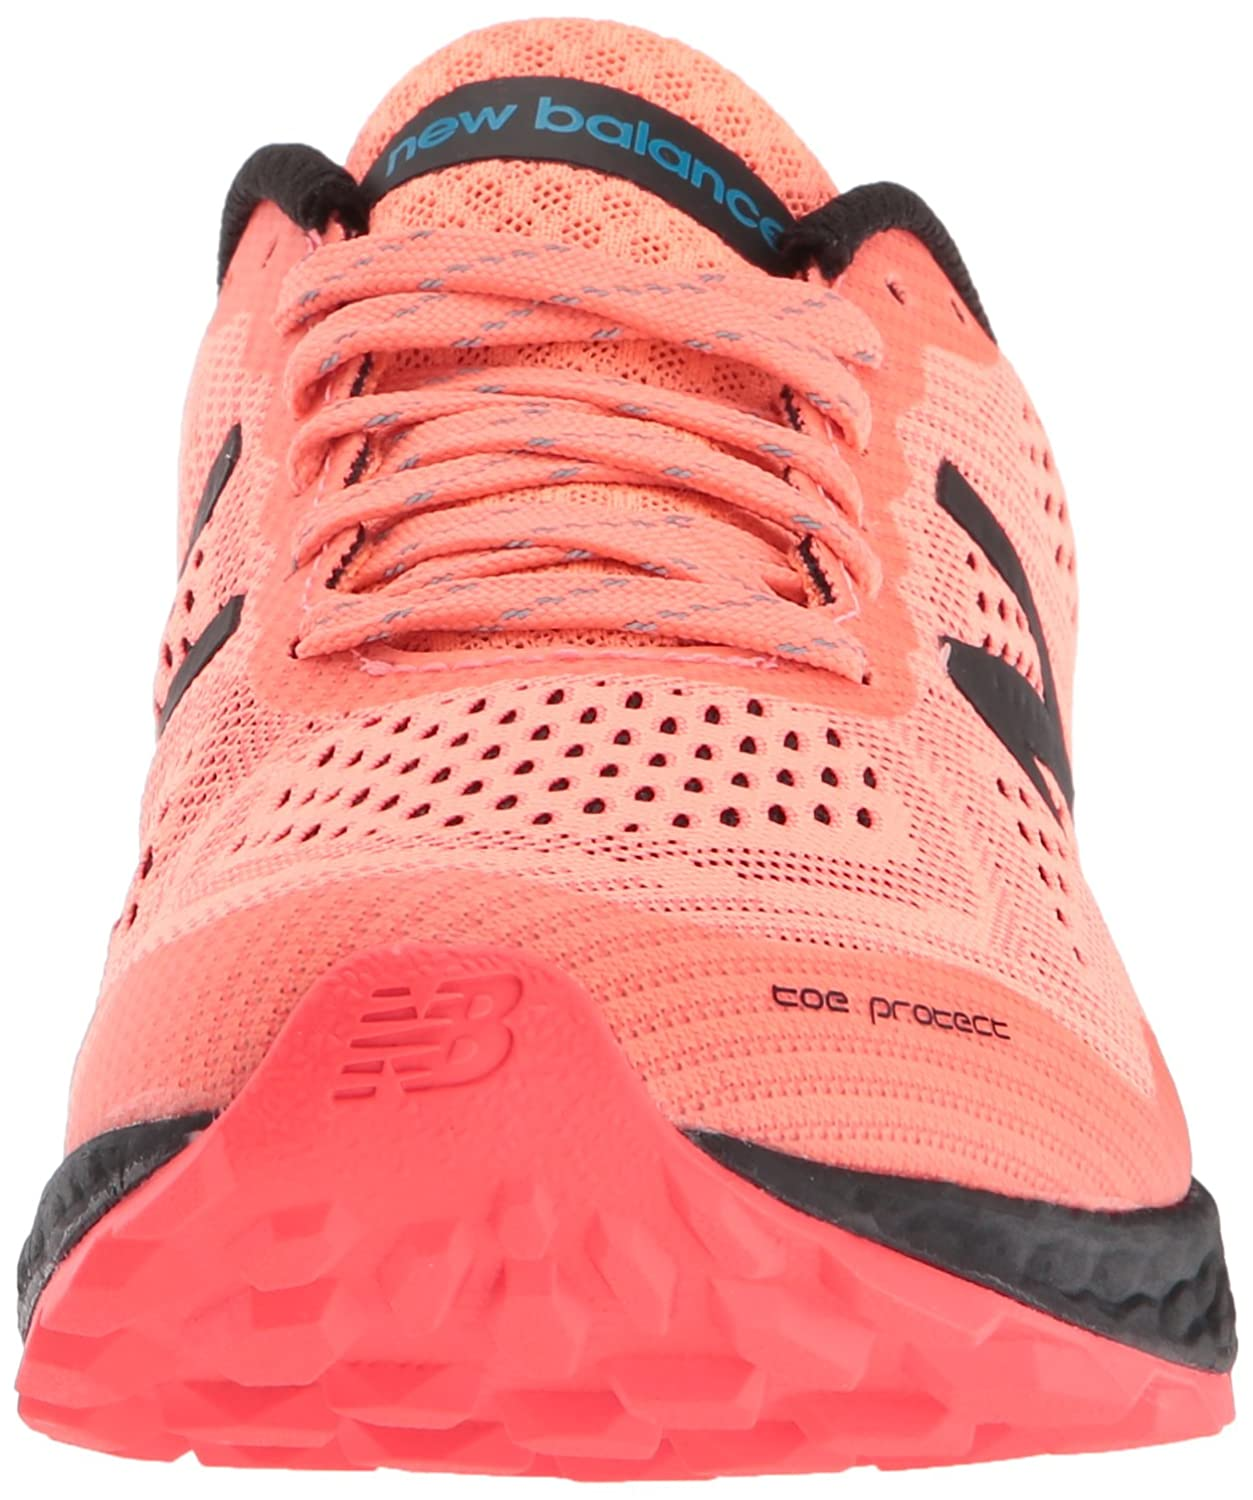 New Balance Women's Gobi v2 Fresh Foam Trail Running Shoe B06XS9TCXB 5 D US|Pink/Black